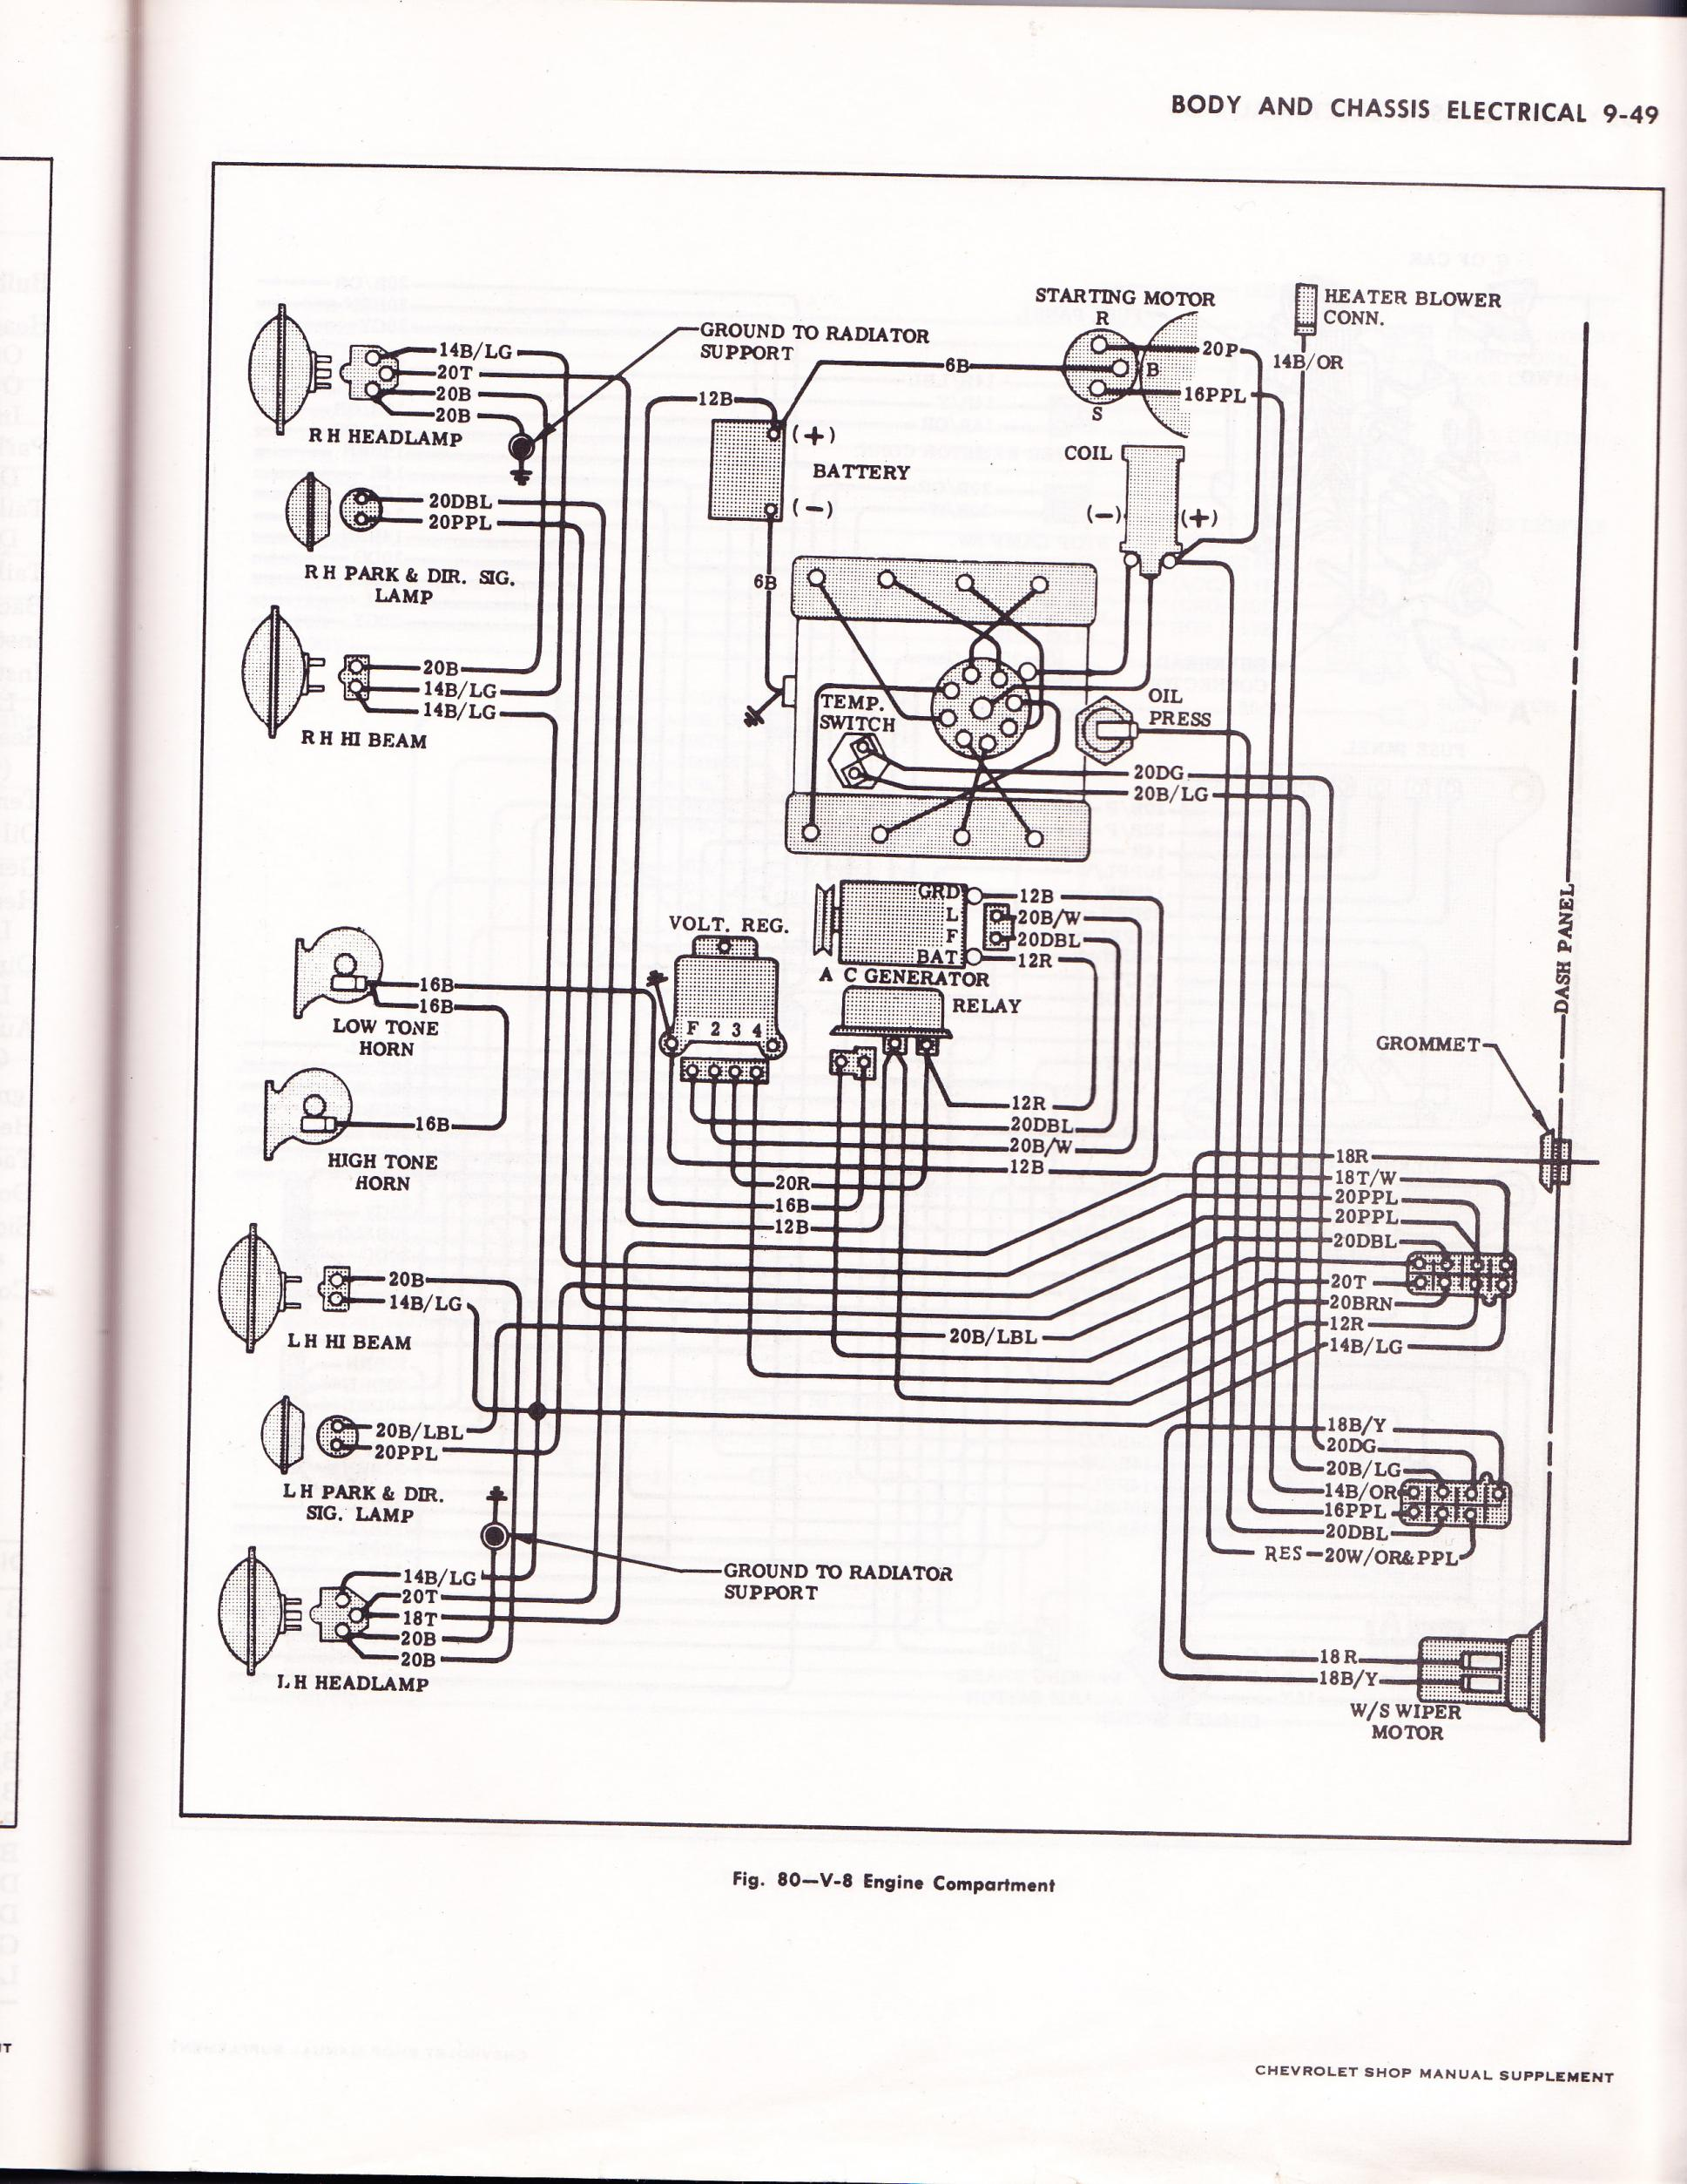 engine wiring diagram dodge w350  dodge  auto wiring diagram